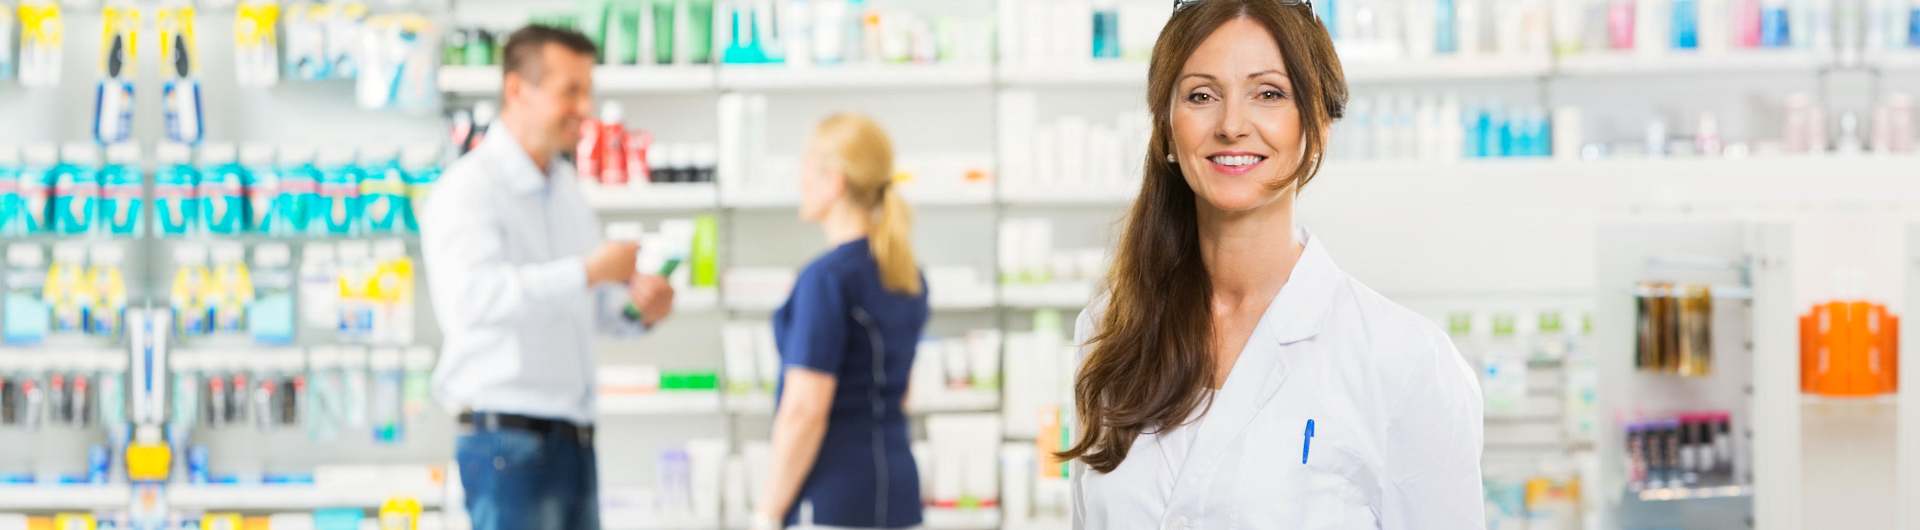 pharmacist woman smiling